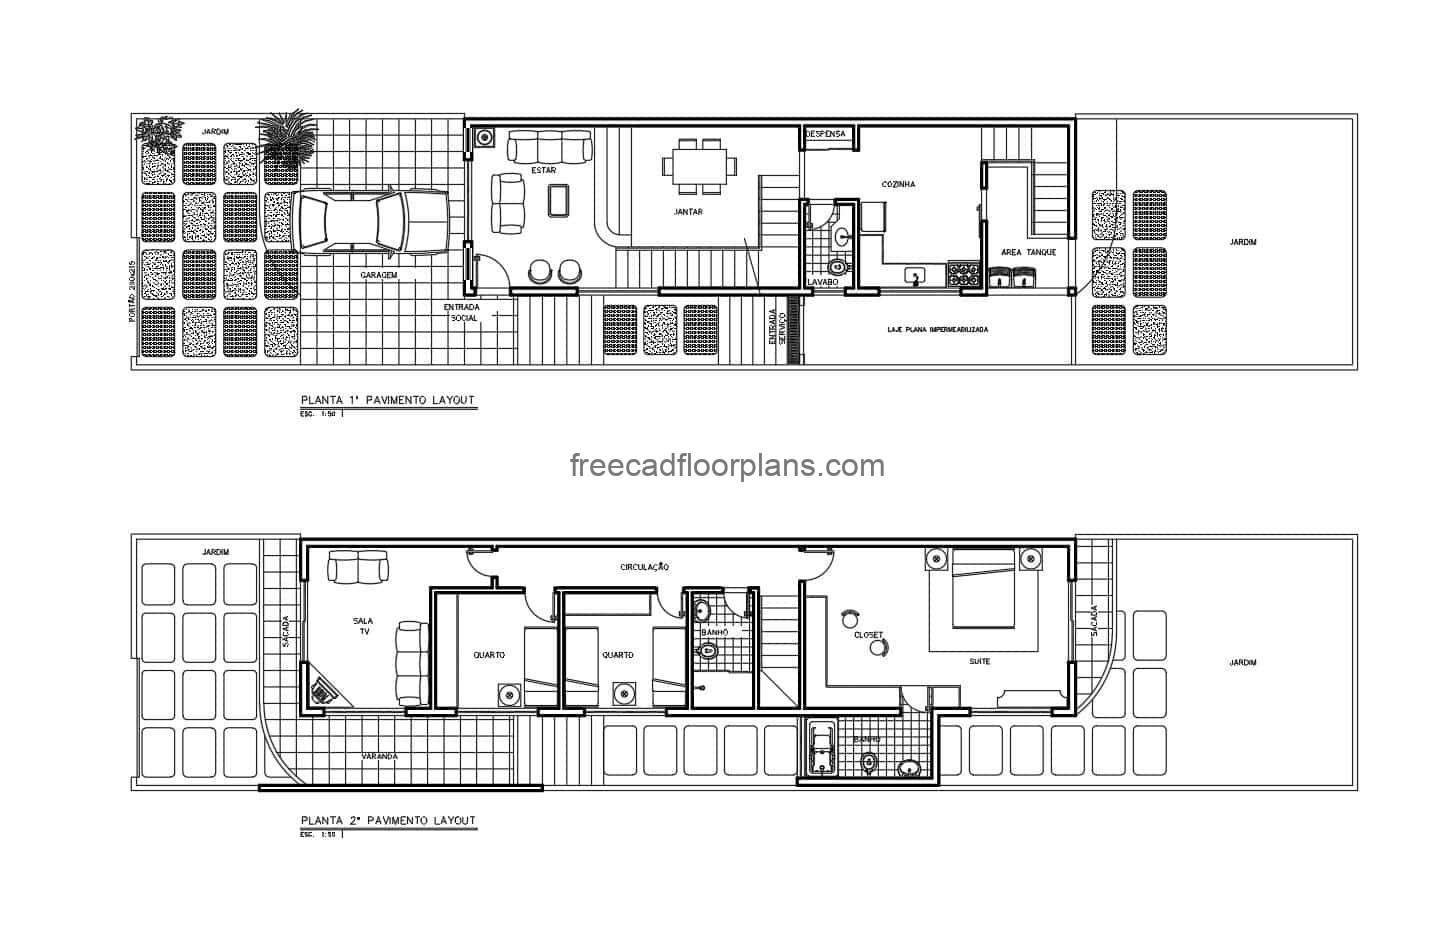 Complete executive project of architectural and dimensioned plants 2D in DWG format of Autocad residence of two levels with three rooms. First level with garage, living room, dining room, kitchen, bathroom, service area and garden, second level with three bedrooms with two bathrooms and TV room. Blueprints for free download.